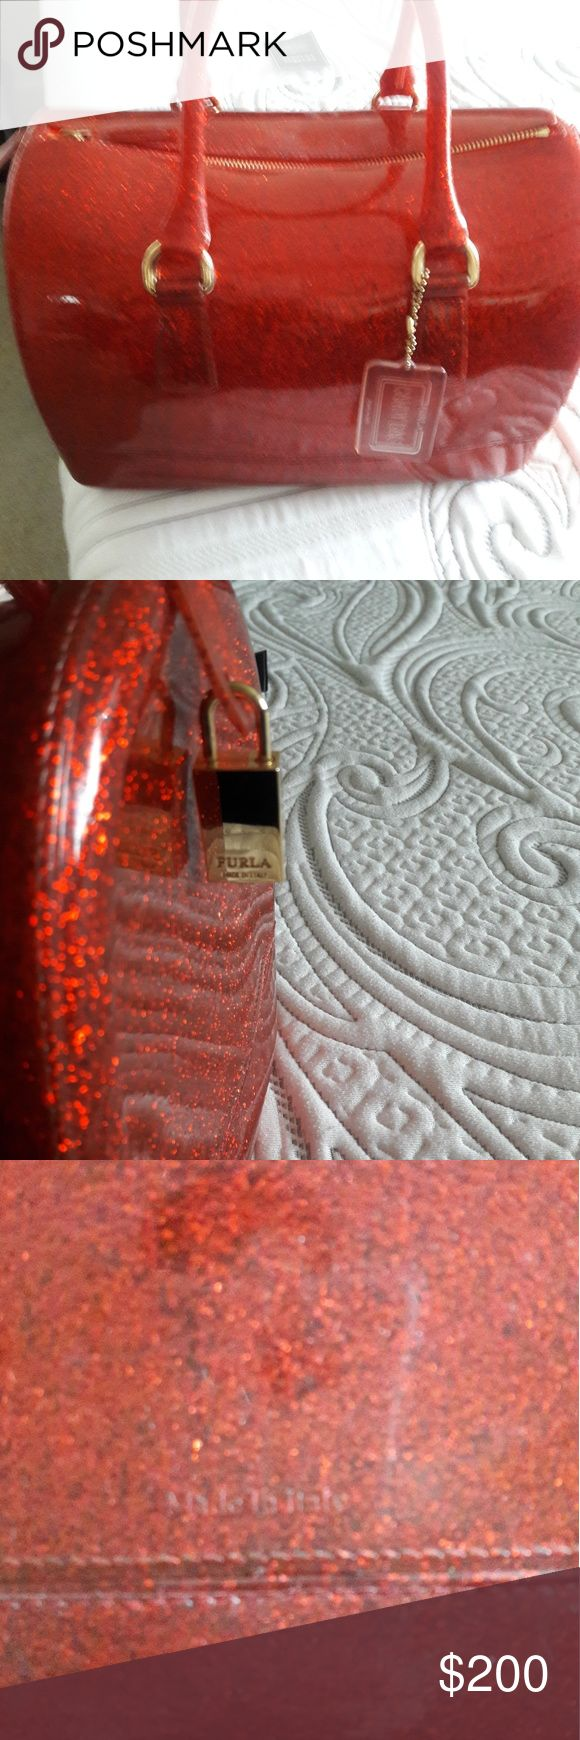 Authentic Furla Purse Sparkly red medium/large in size, used once no marks or scratches. Authentic. Comes with dust bag. Furla Bags Totes